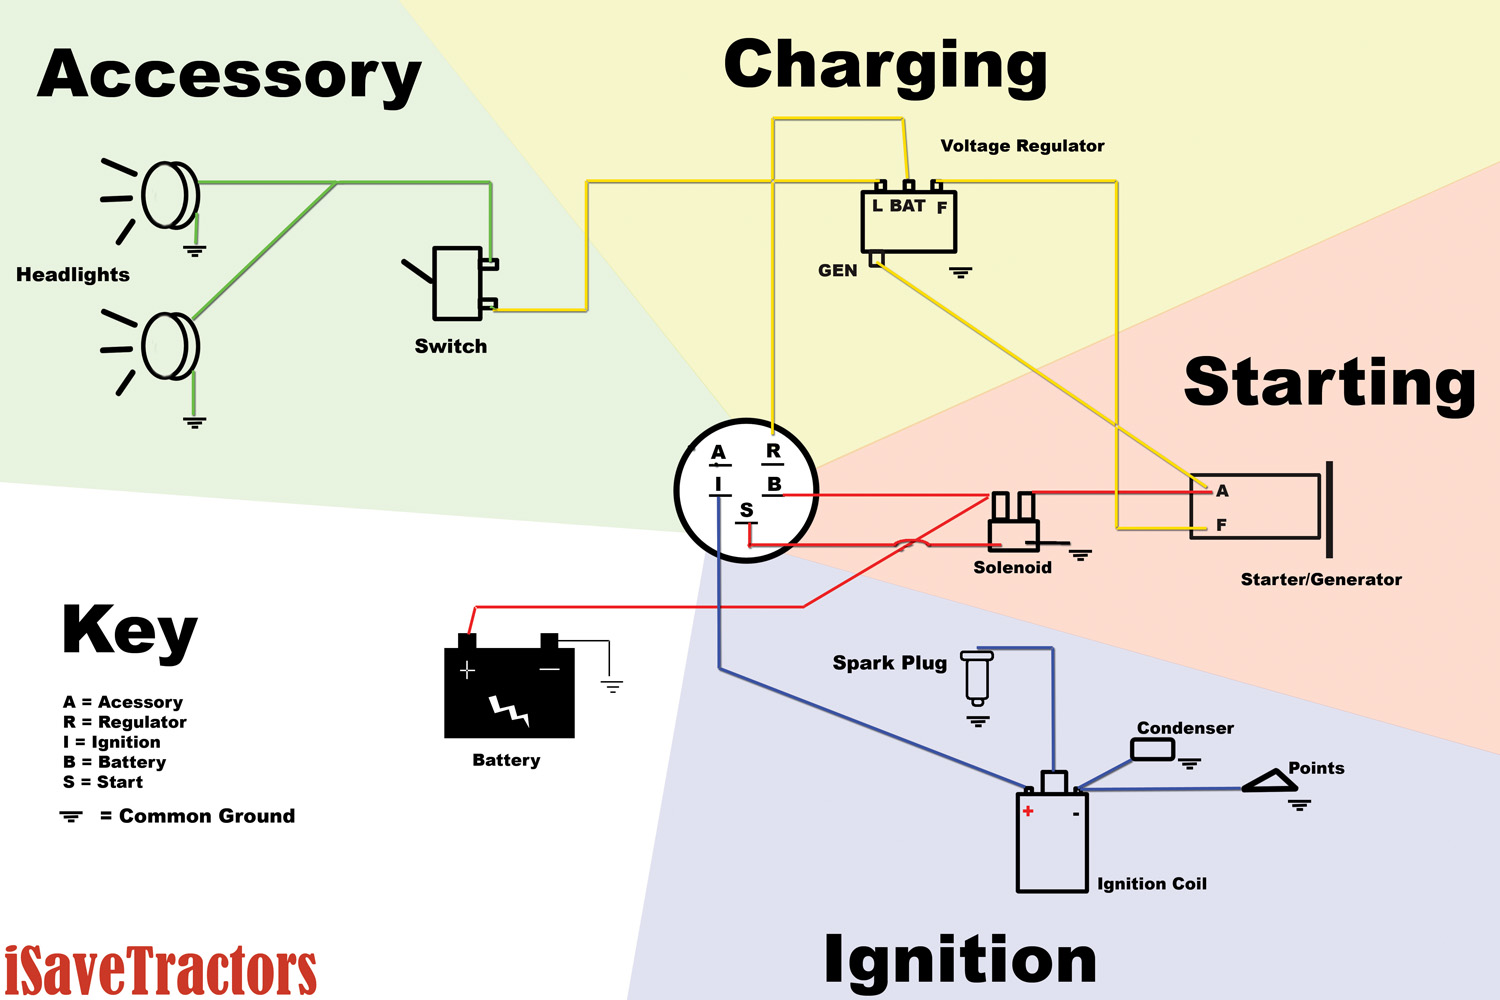 tractor wiring starter gen copy web copy ignition switch wiring diagram solenoid switch wiring diagram lucas ford tractor ignition switch wiring diagram at virtualis.co